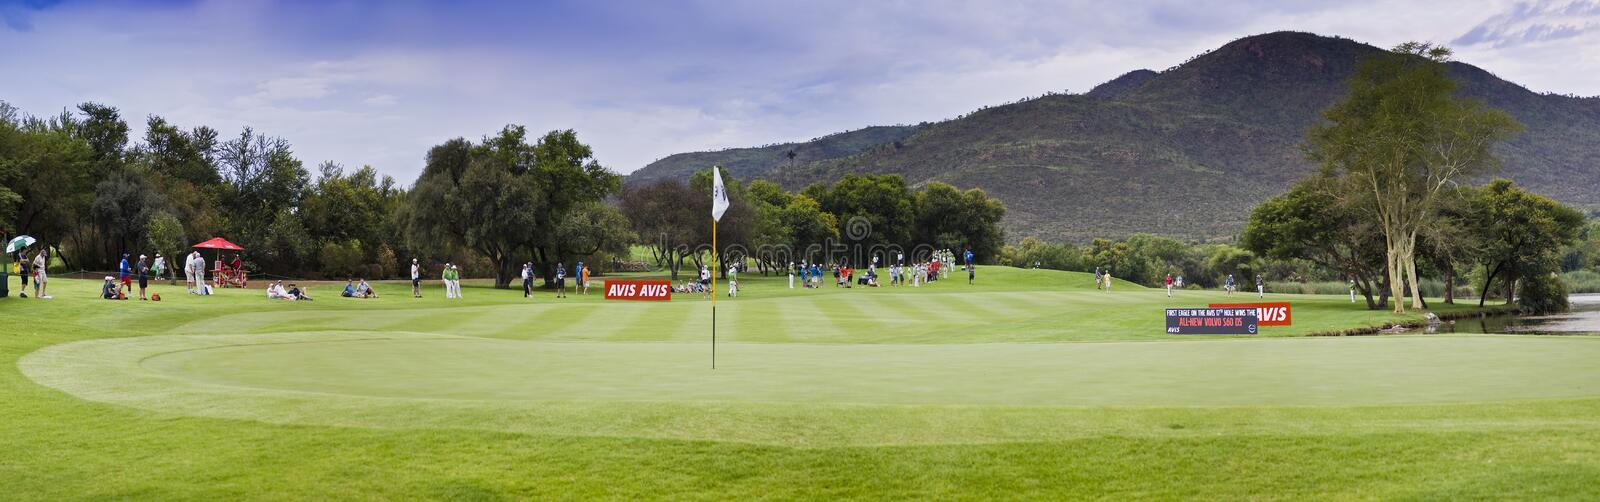 Download 17th Green - Gary Player Golf Course - Pano Editorial Stock Image - Image: 17814989